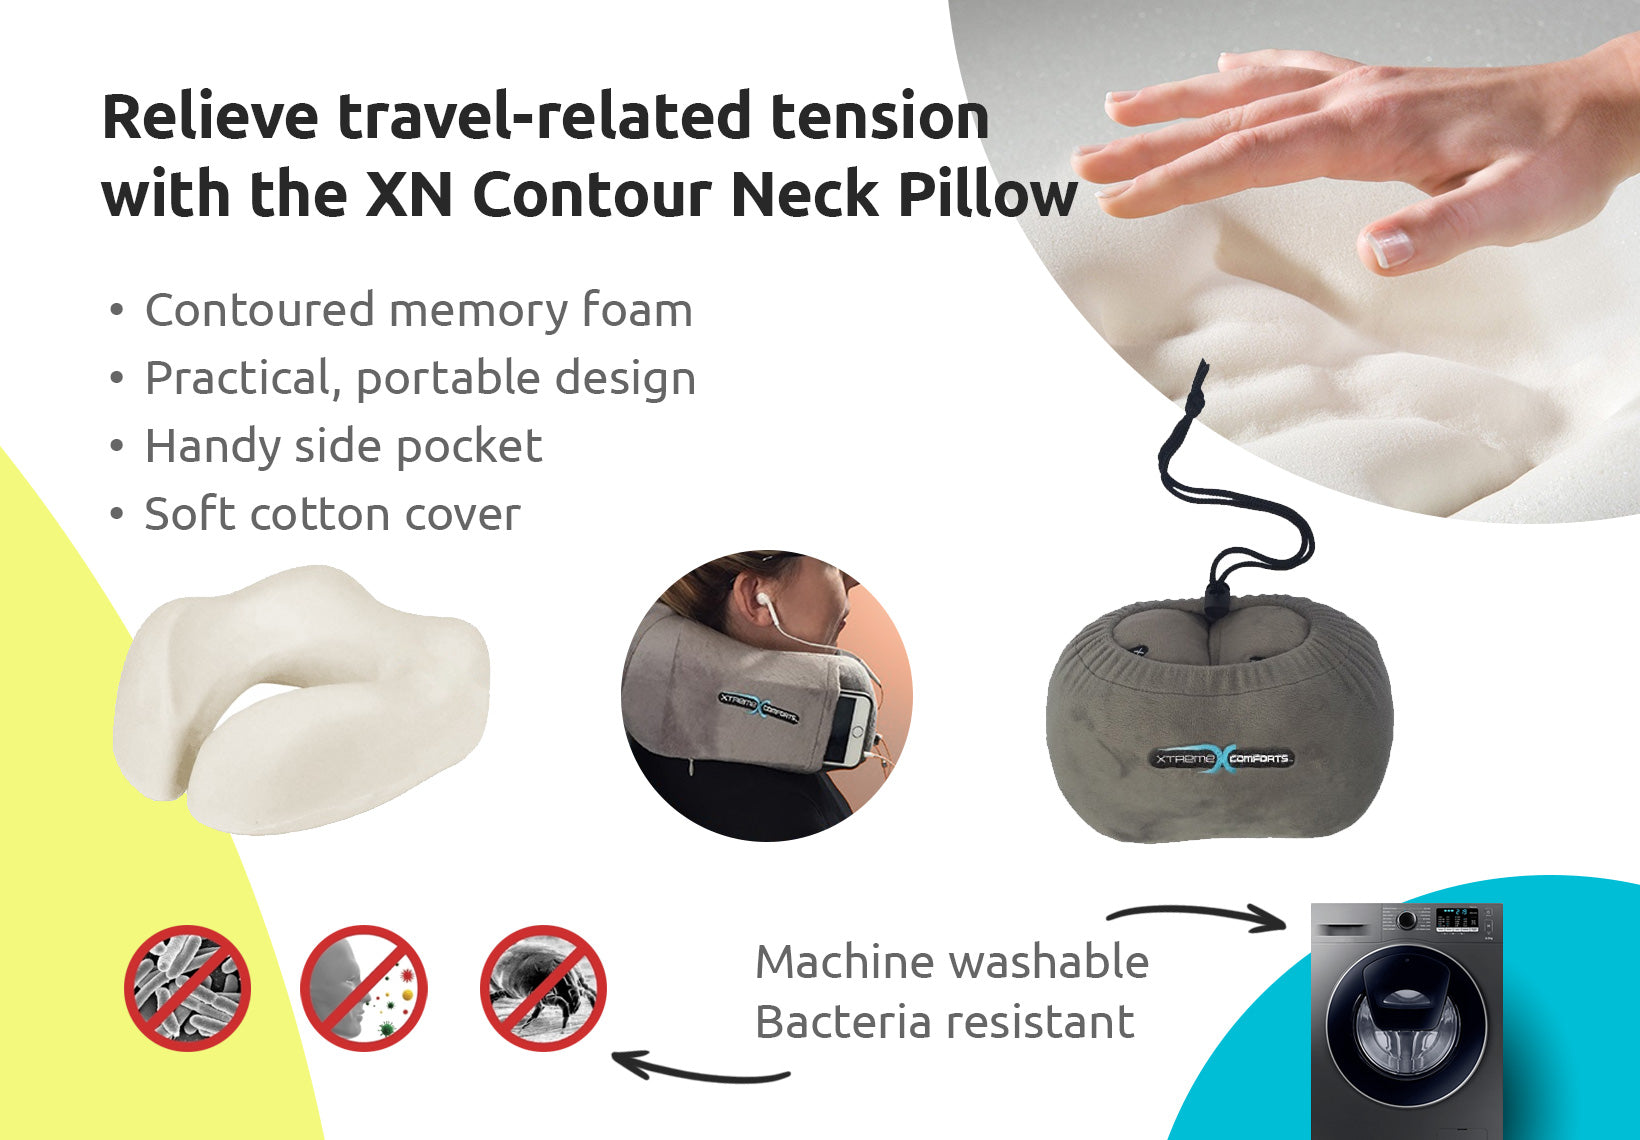 Xn Contour Neck Pillow Xtreme Comforts